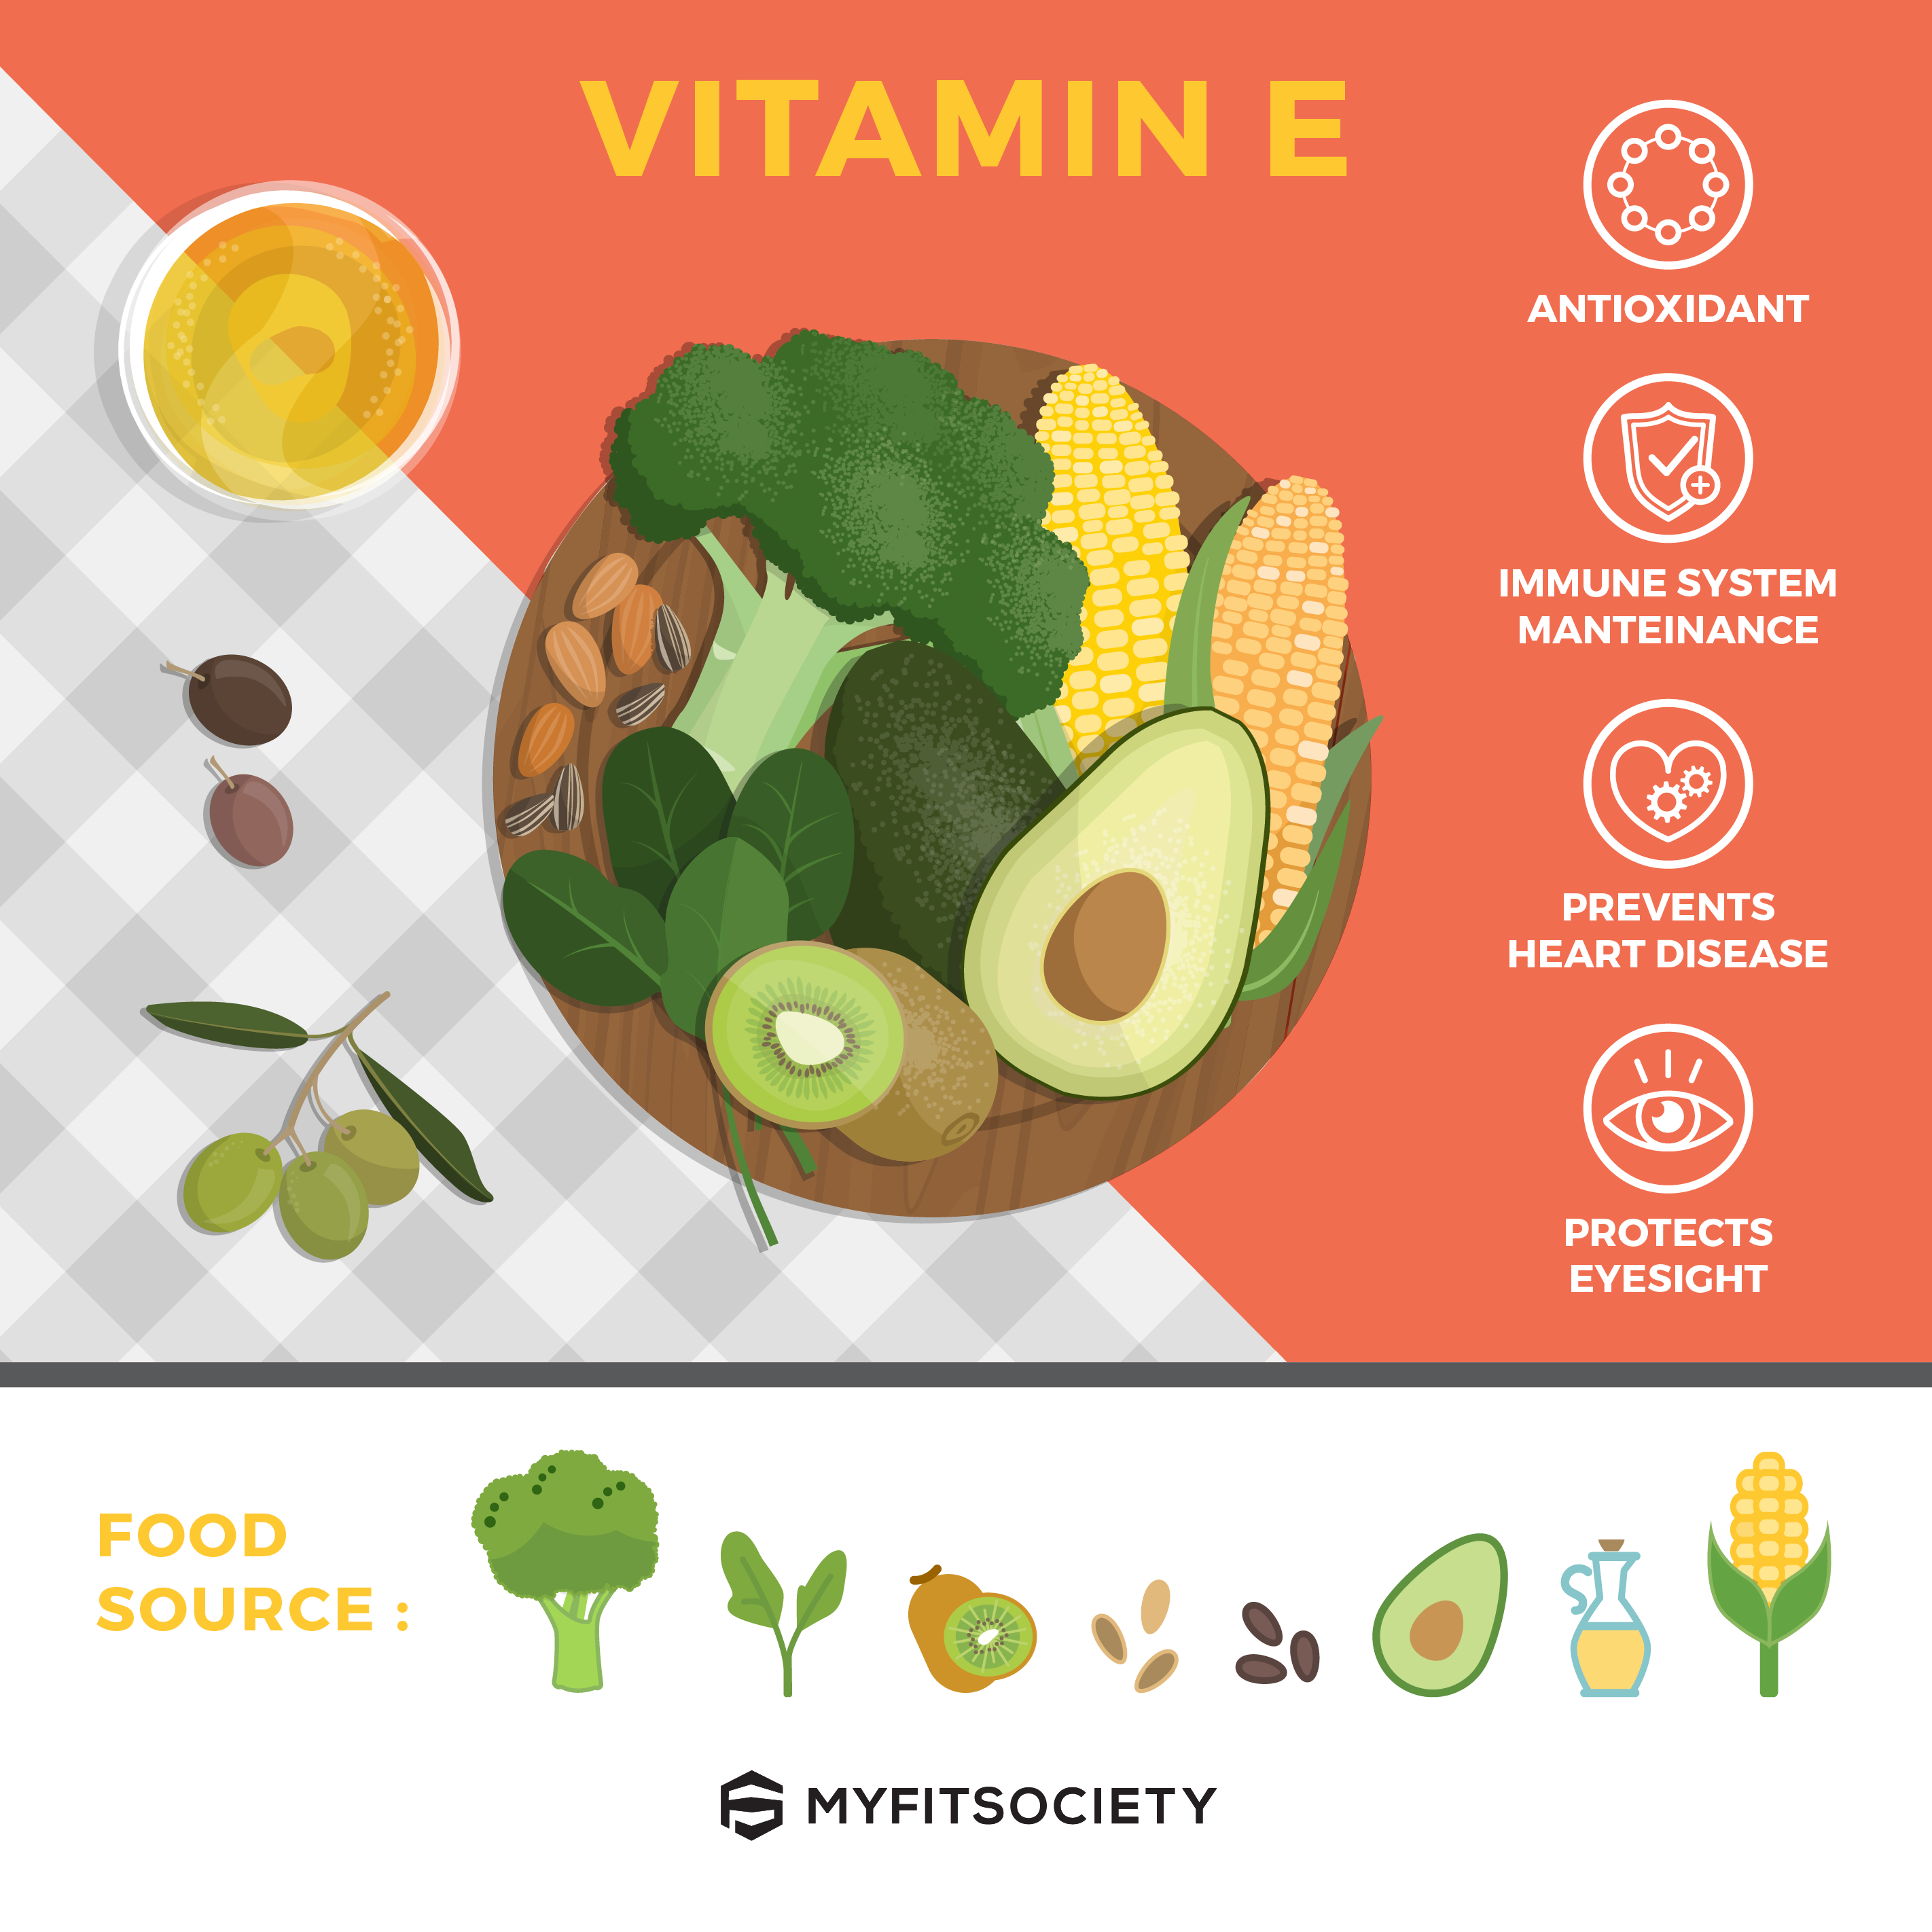 Vitamin E is important to keep us healthy, helps prevent